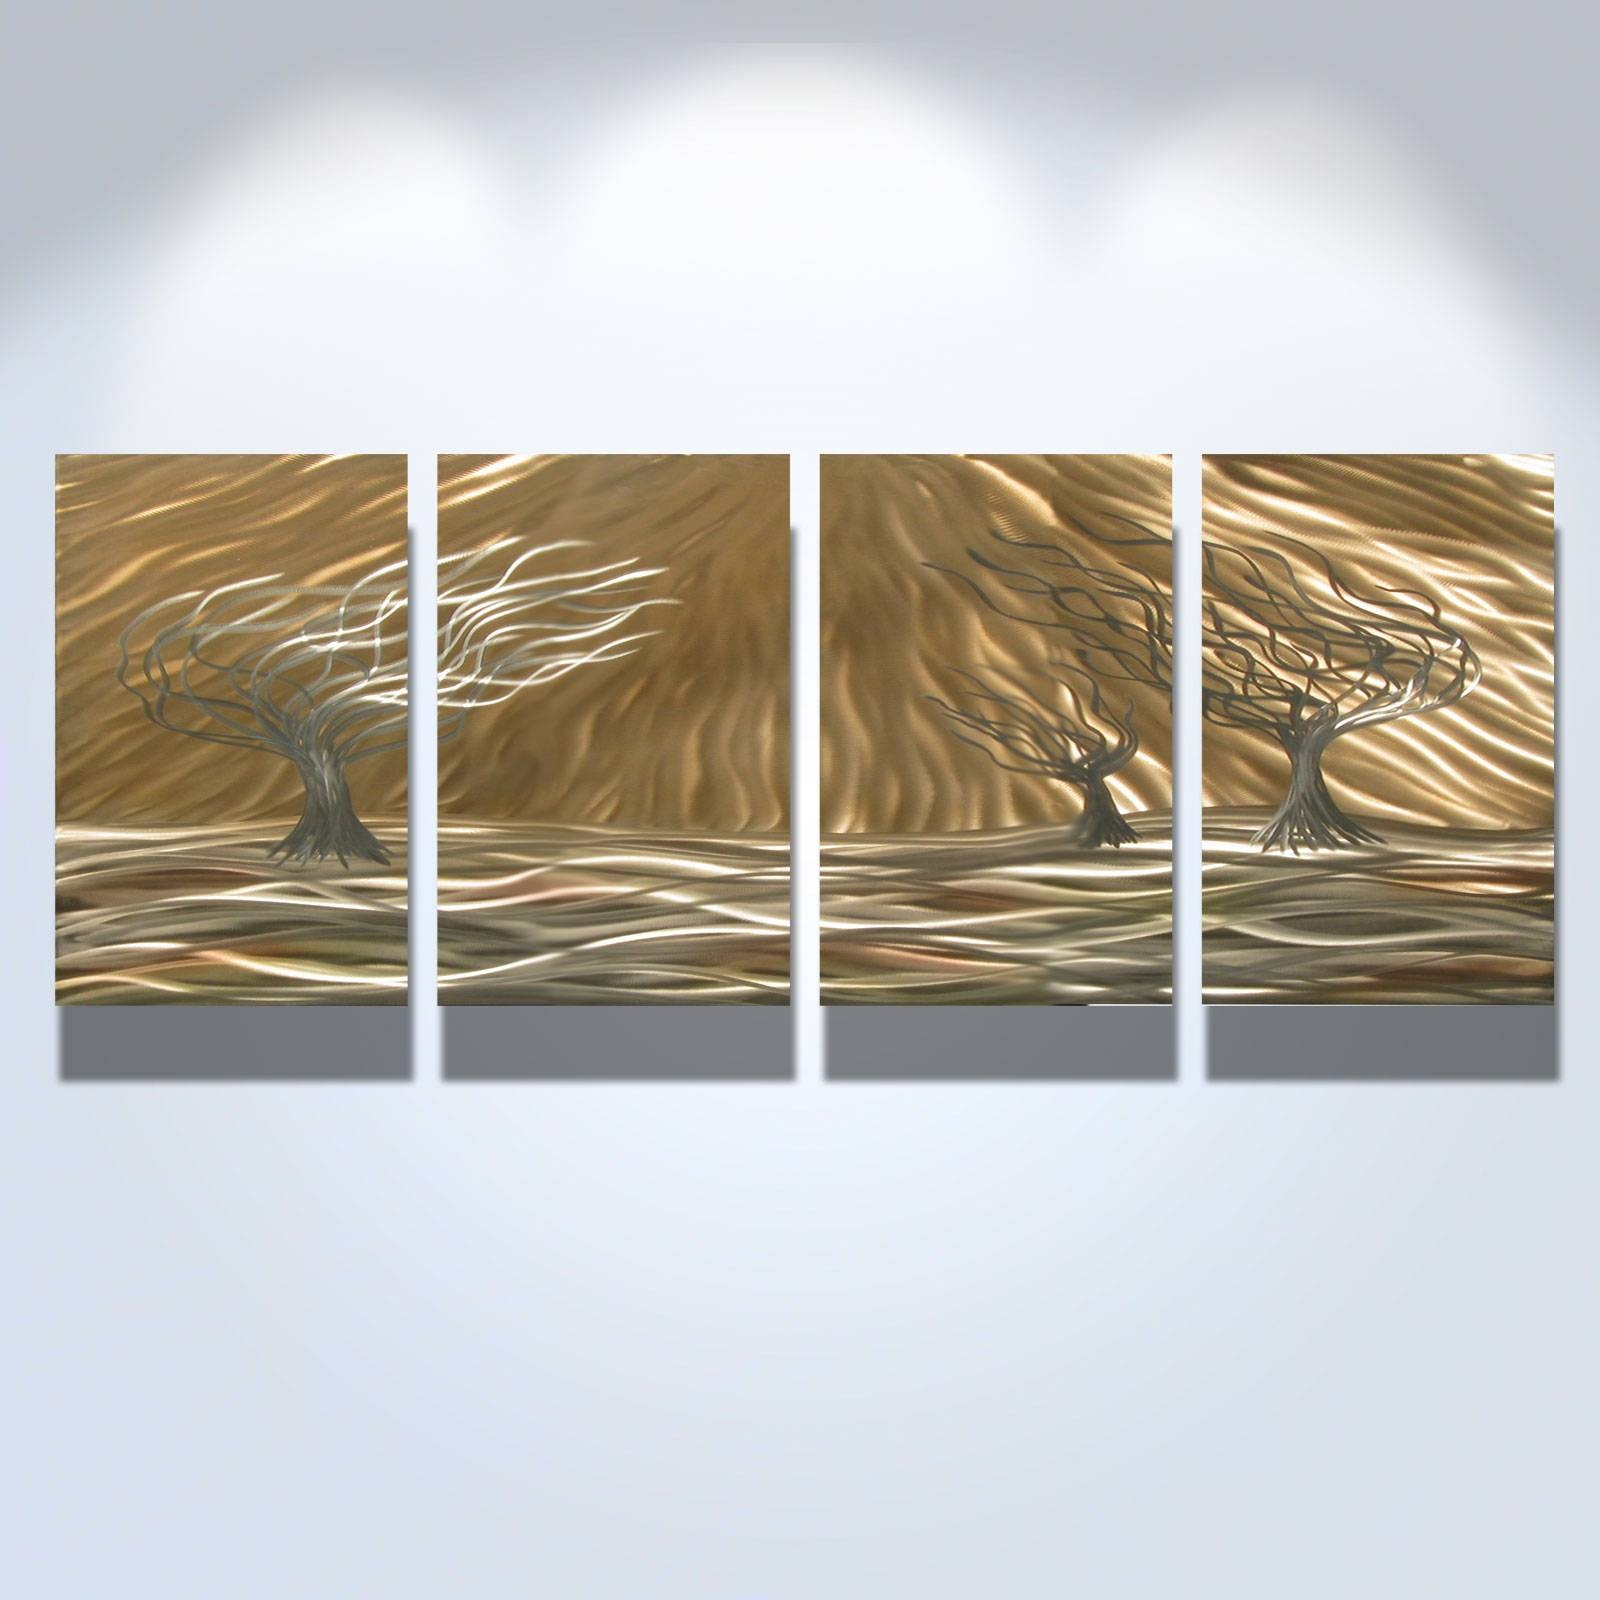 3 Trees 4 Panel – Abstract Metal Wall Art Contemporary Modern Regarding Recent Decorative Metal Wall Art Panels (Gallery 17 of 20)